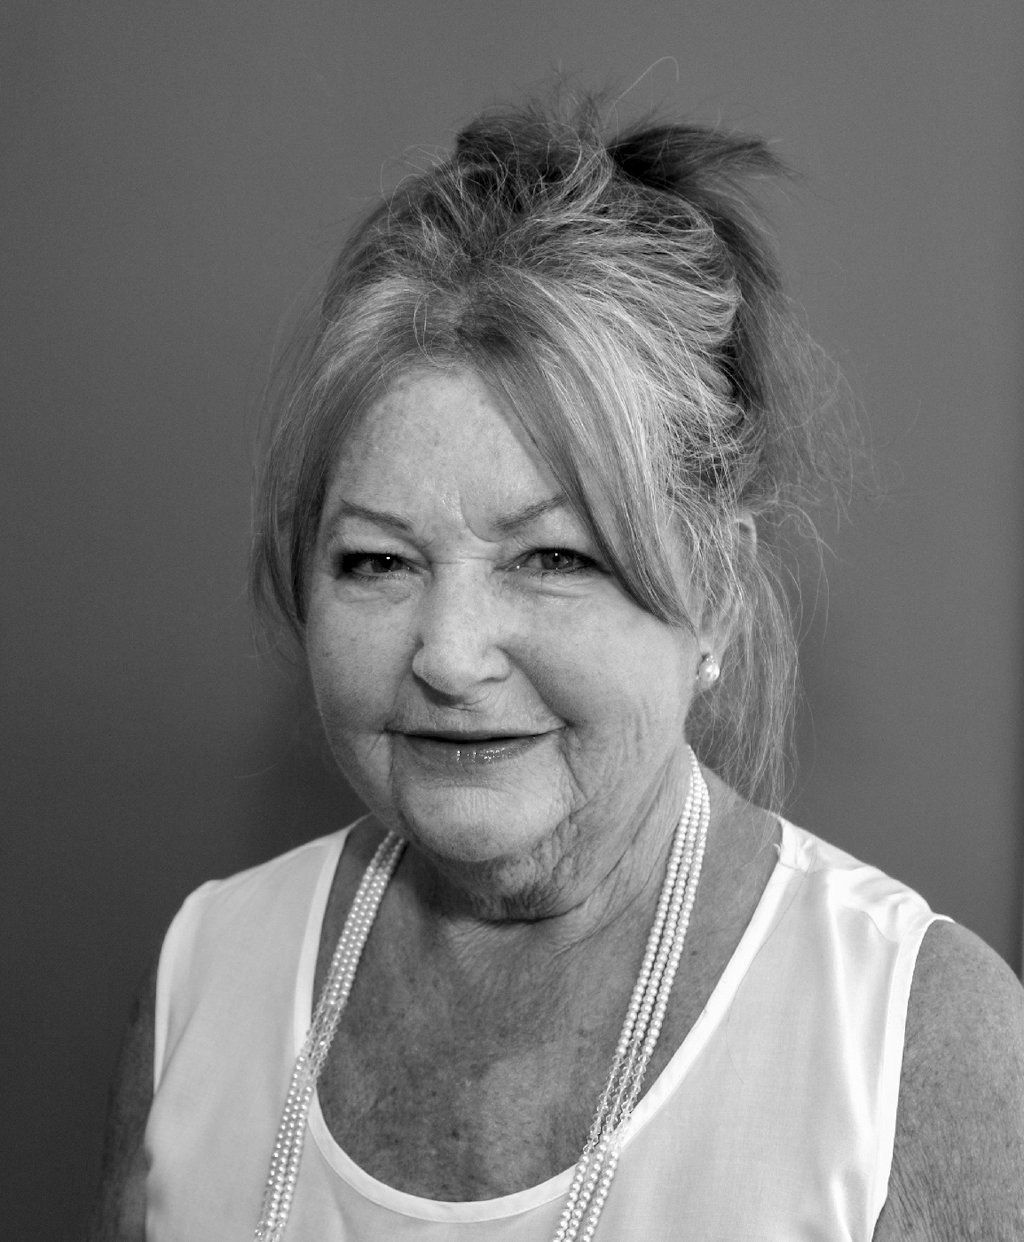 Anne Marie - Owner     Anne Marie established the business in Disley in 1986. She ran and worked at the salon for over 20 years before retiring as a therapist in 2008. Although she no longer works in the salon Anne Marie still owns the business and takes an active role in the running of the salon.